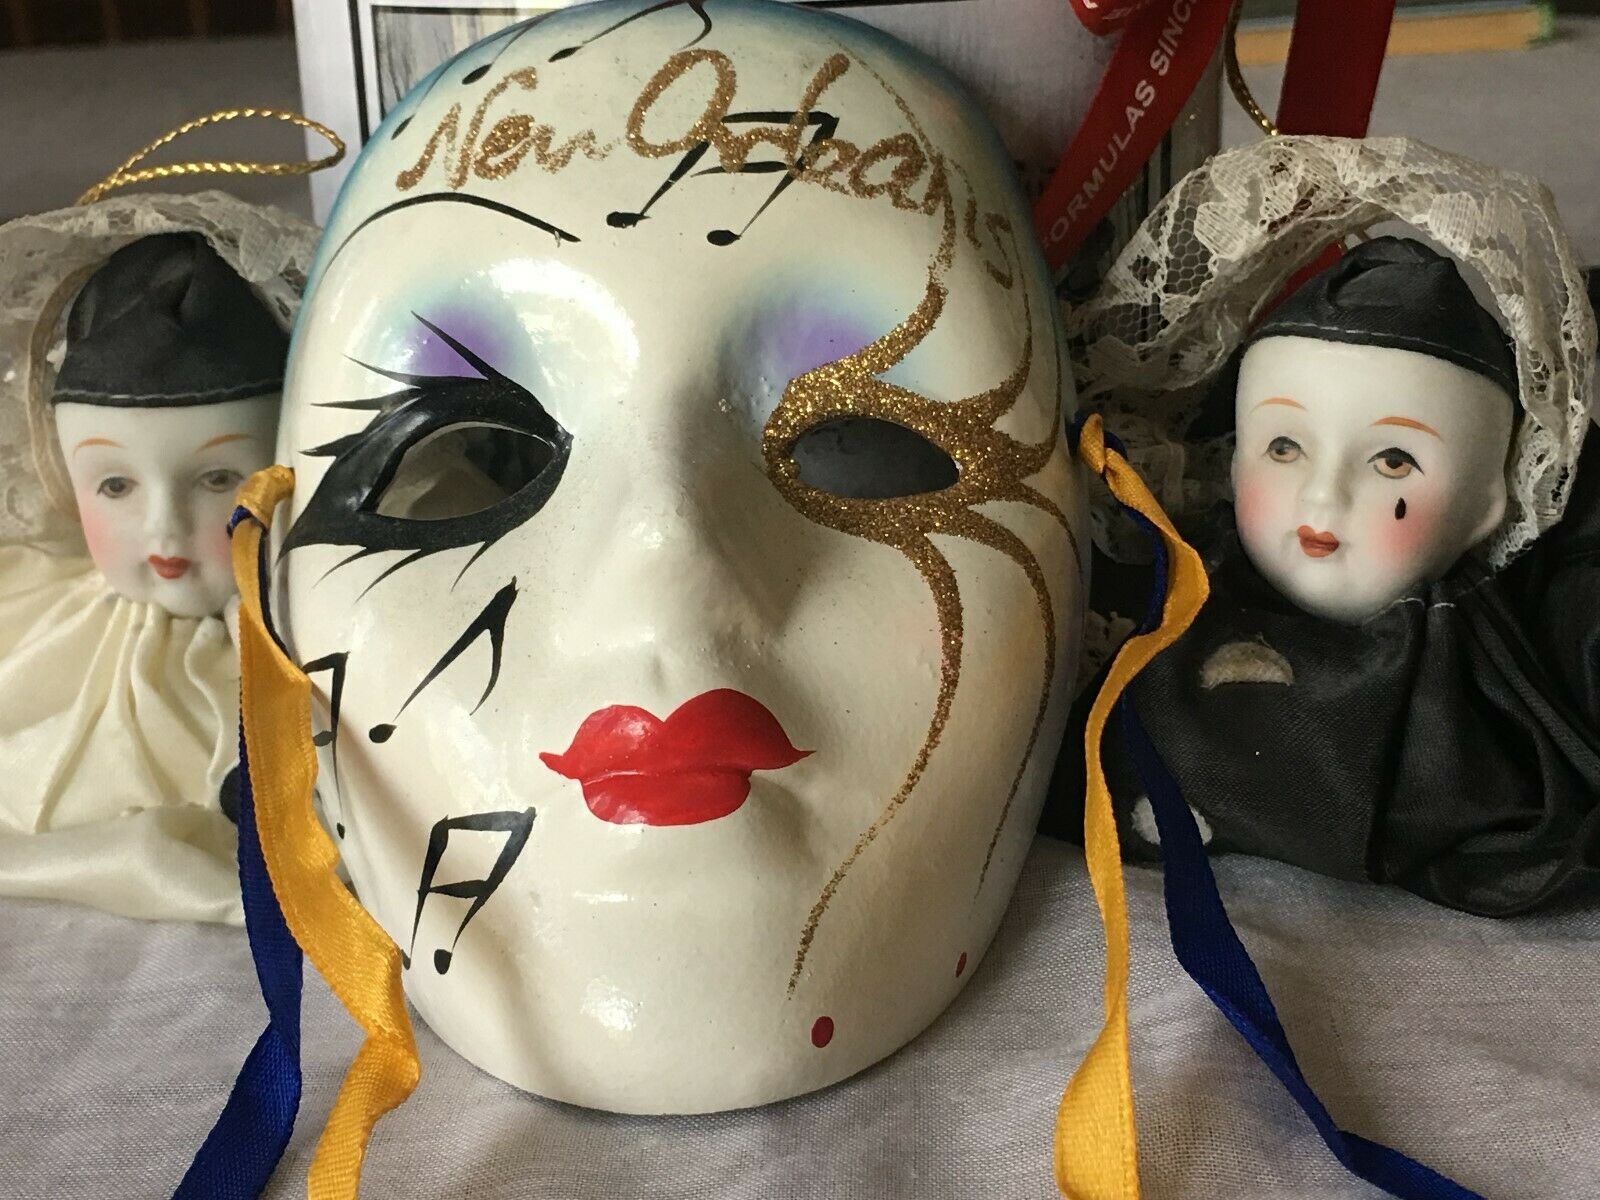 3 Ceramic Porcelain Face Masks with 1 C.O. Bigelow Apothecaries container